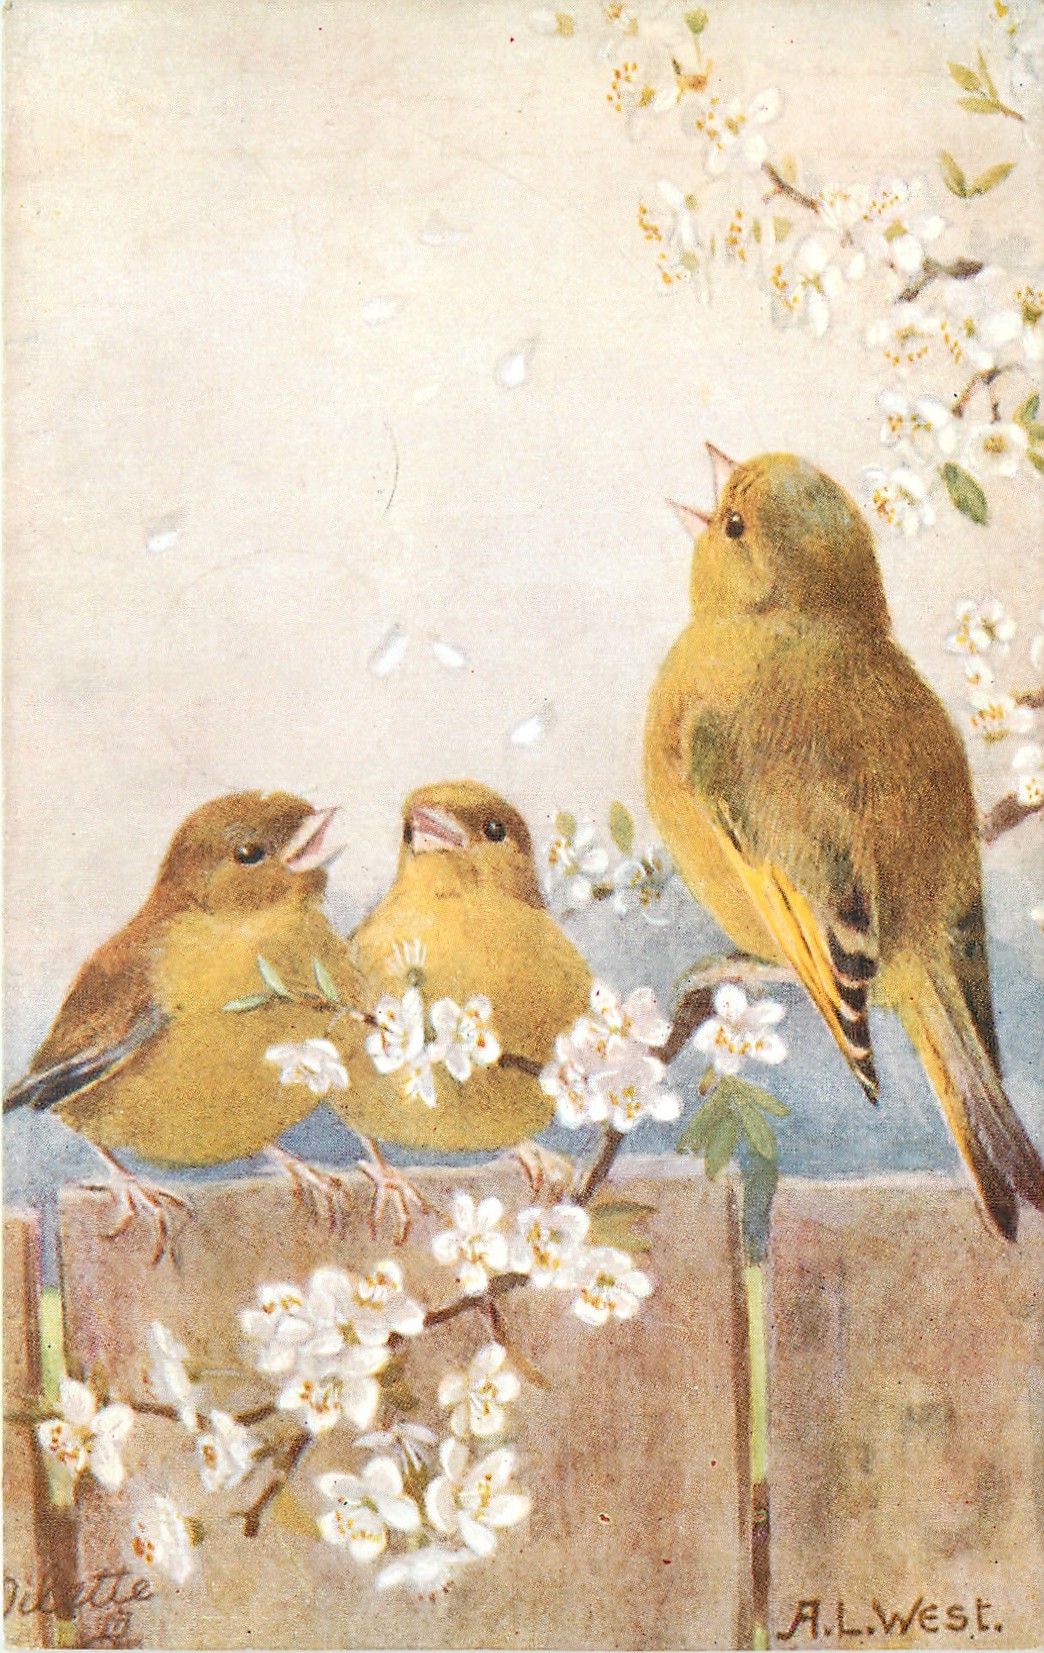 three yellow/brown finches, one on blossom branch, two on fence - Art by A.L. WEST